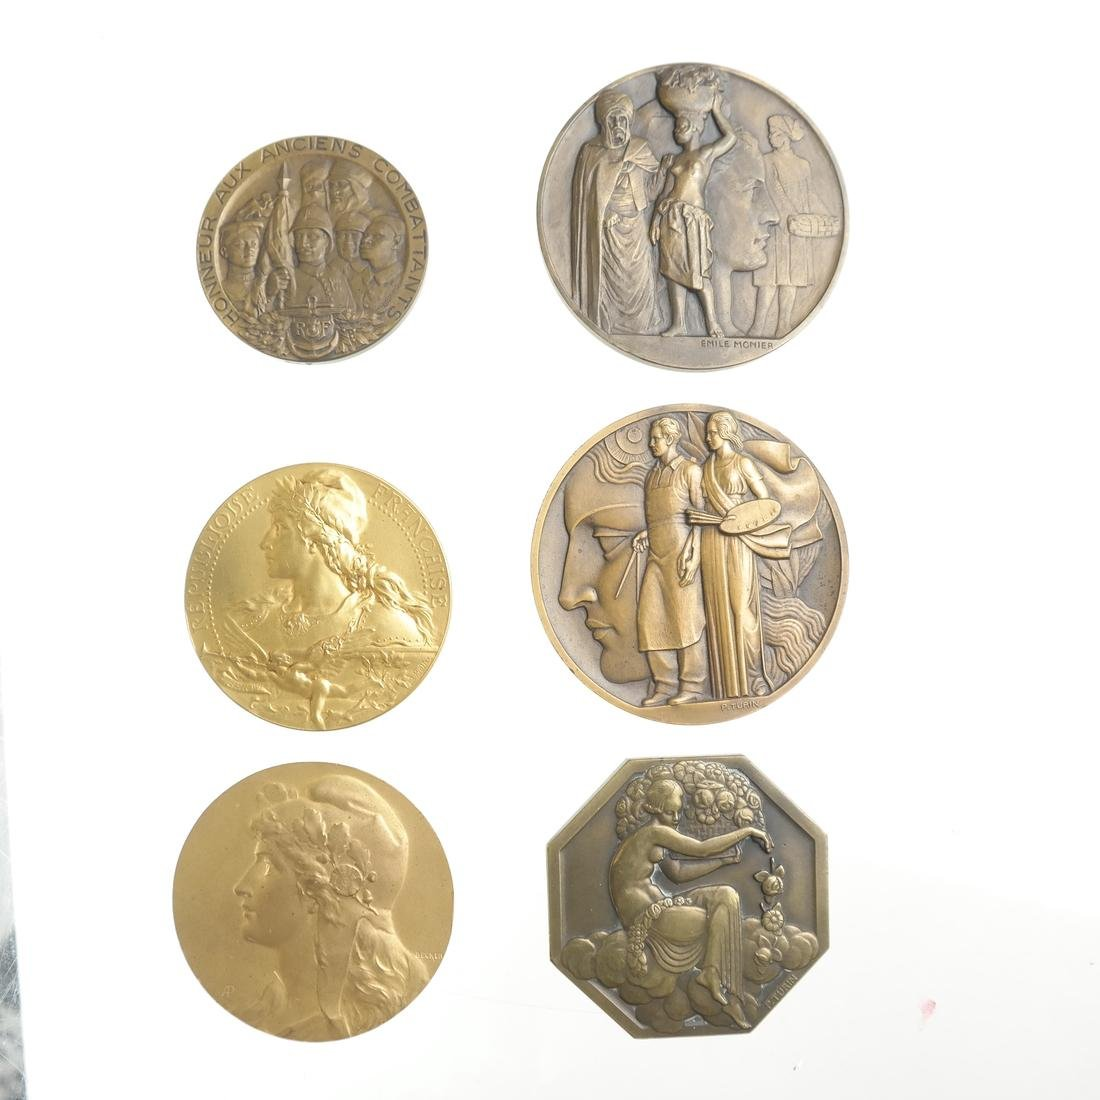 SELECTION OF BRONZE EXPOSITION MEDALS, 1925-1937.